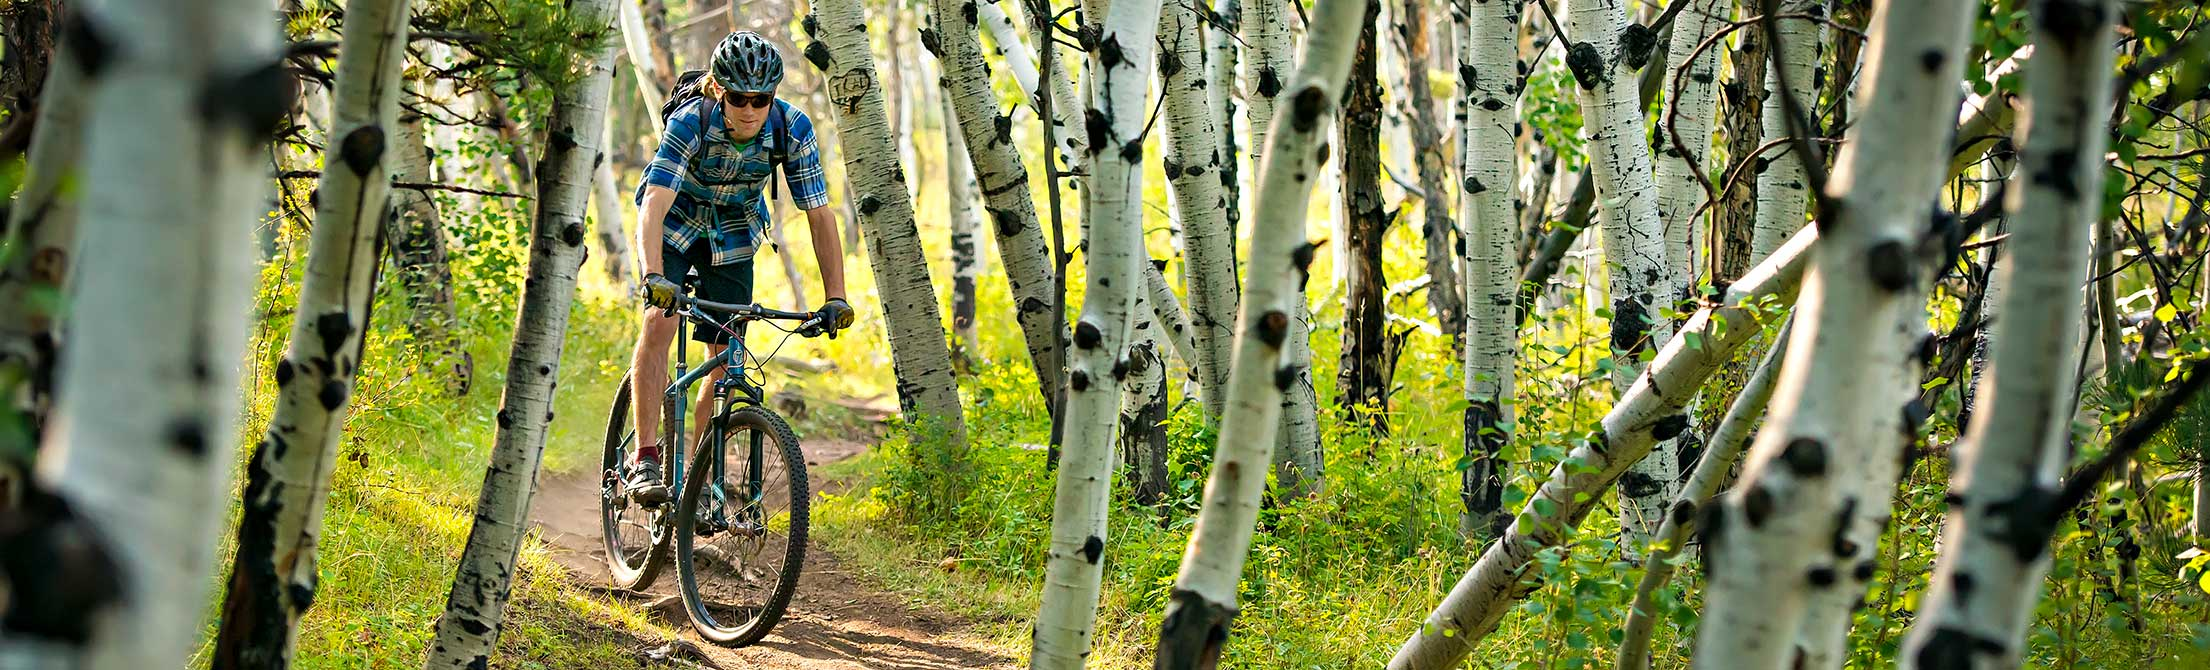 Image of mountain biking at curt gowdy state park